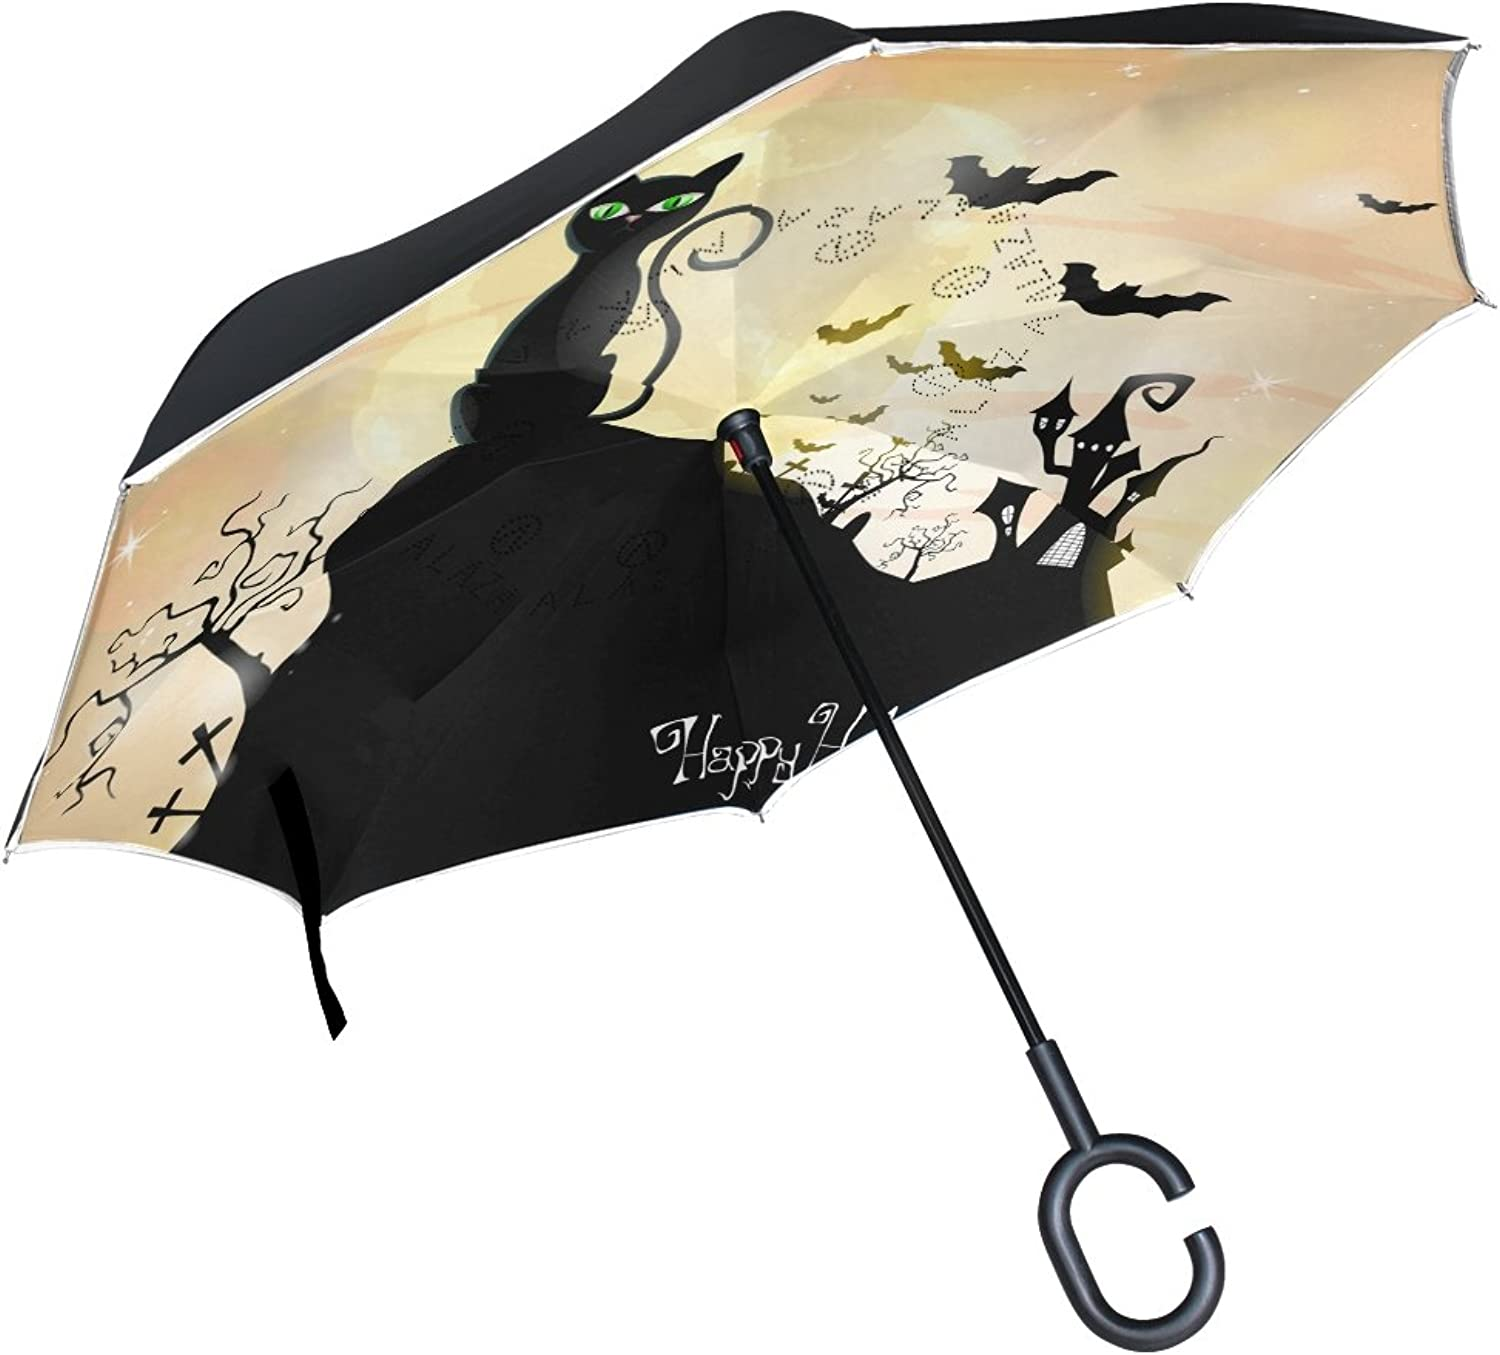 MASSIKOA Happy Halloween Cats And Bats Ingreened Double Layer Straight Umbrellas Inside-Out Reversible Umbrella with C-Shaped Handle for Rain Sun Car Use